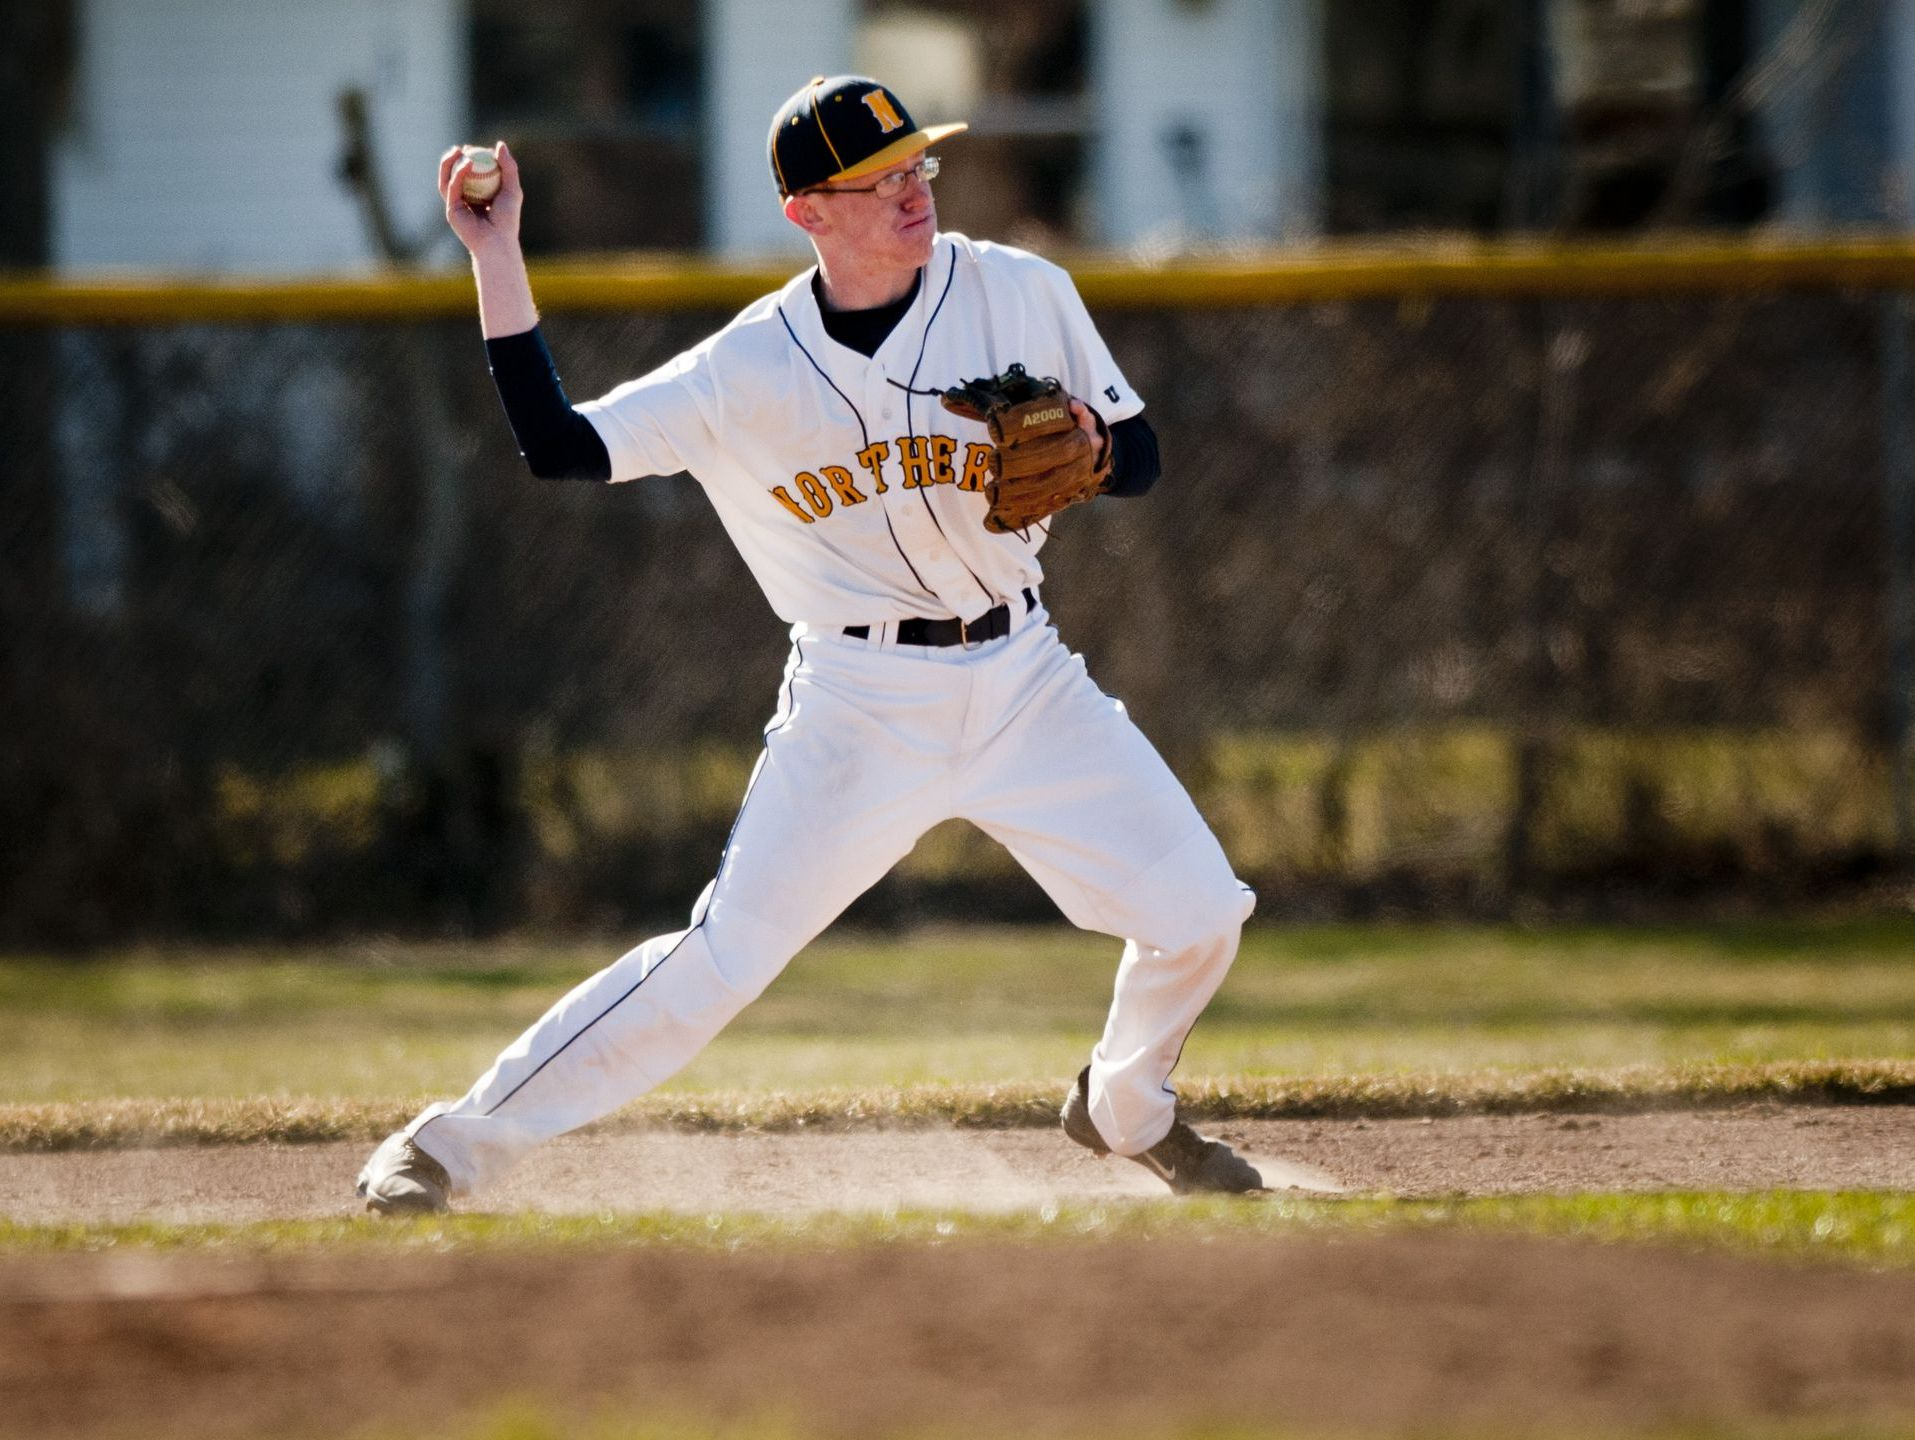 Northern's Isaac Raab throws the ball to second base for the out during a baseball game Wednesday, April 15, 2015 at Port Huron Northern High School.